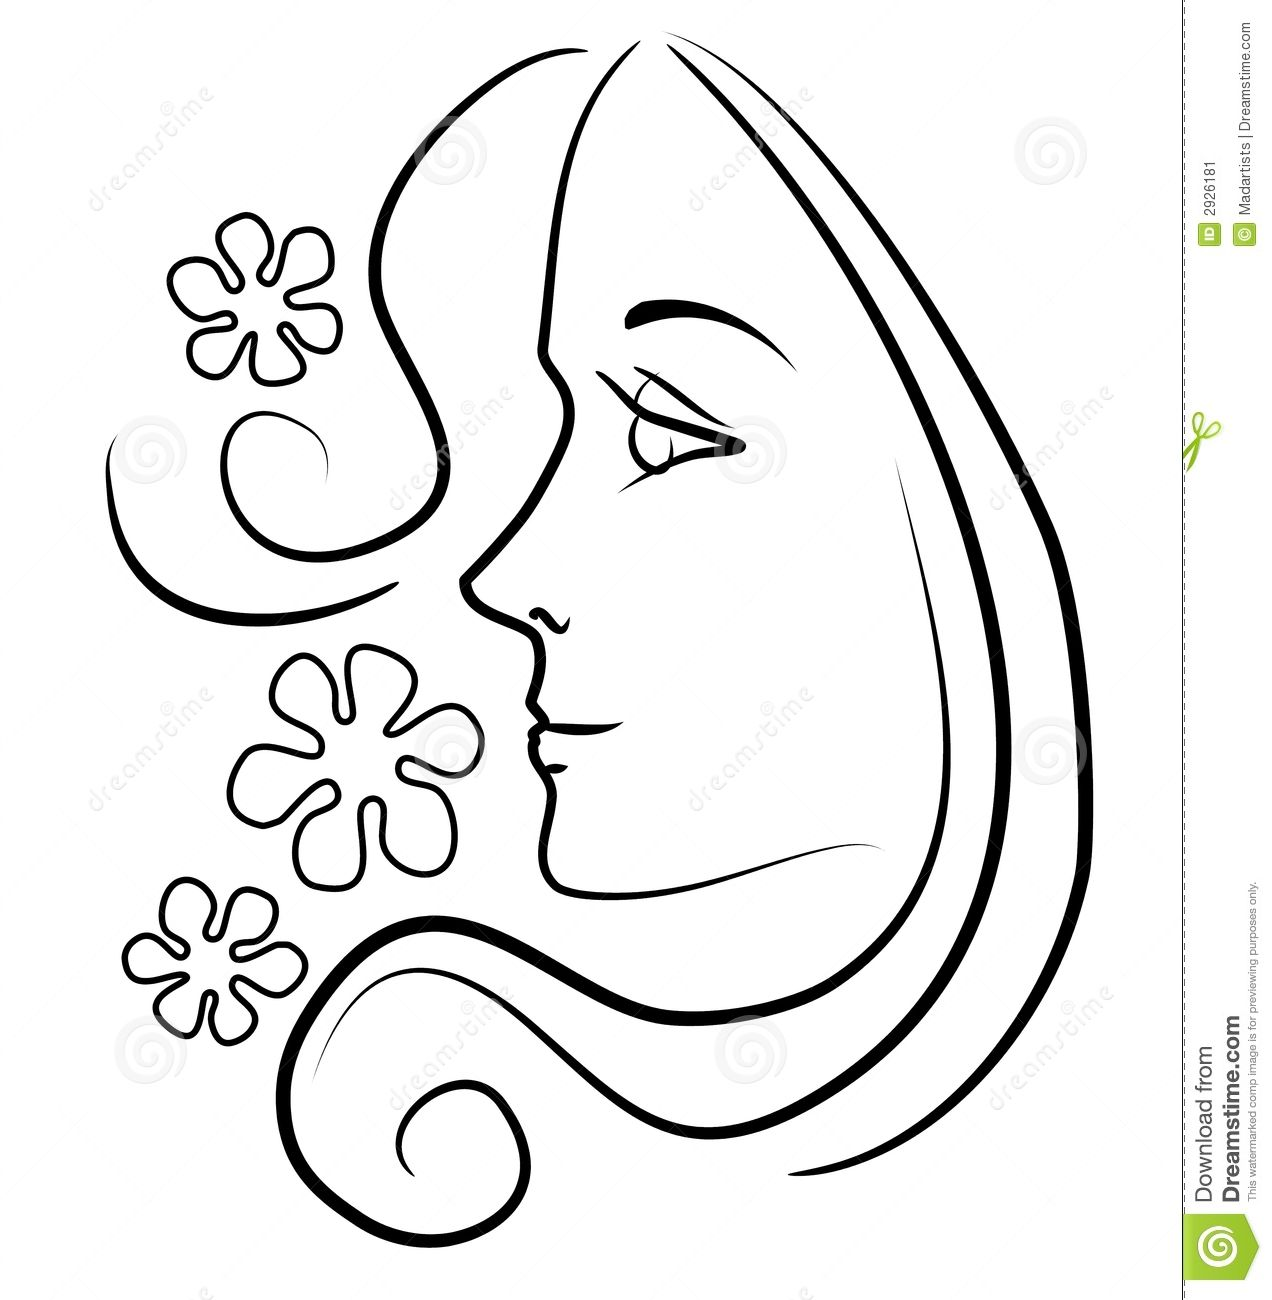 Girls bathroom sign outline - Clip Art Of A Girl Face Clip Art Outline Illustration Of The Profile Face Of